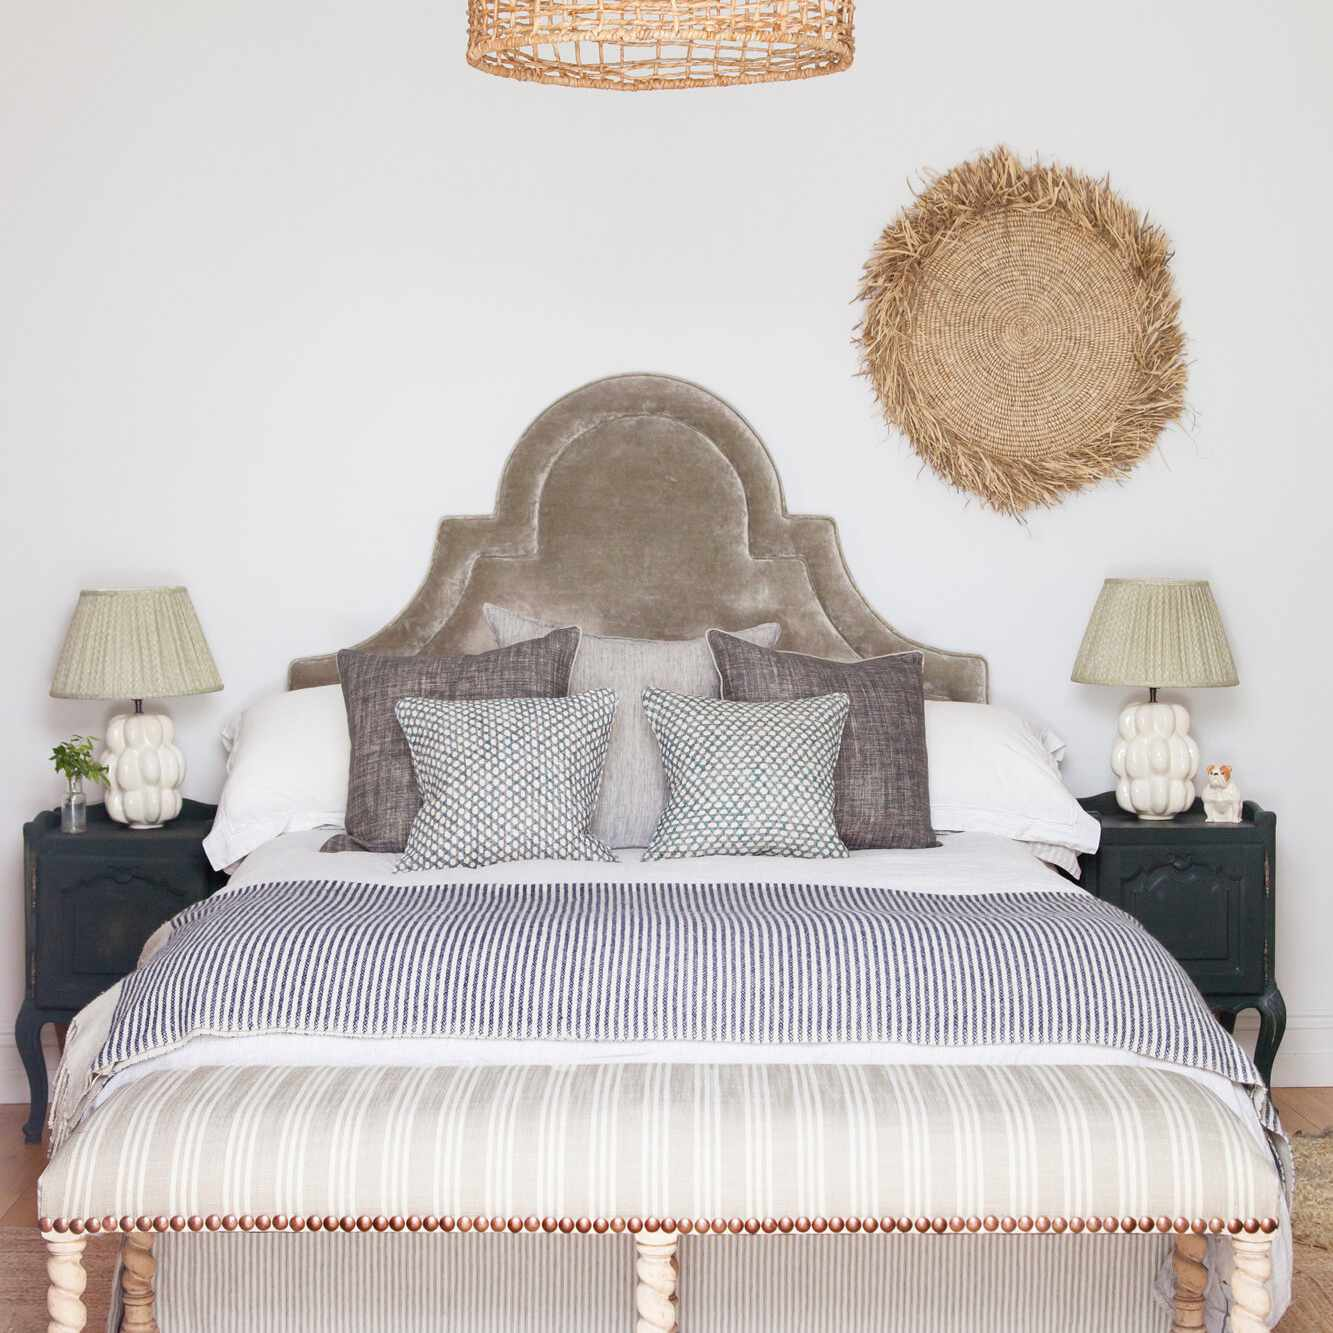 A bohemian bedroom with some Victorian accents